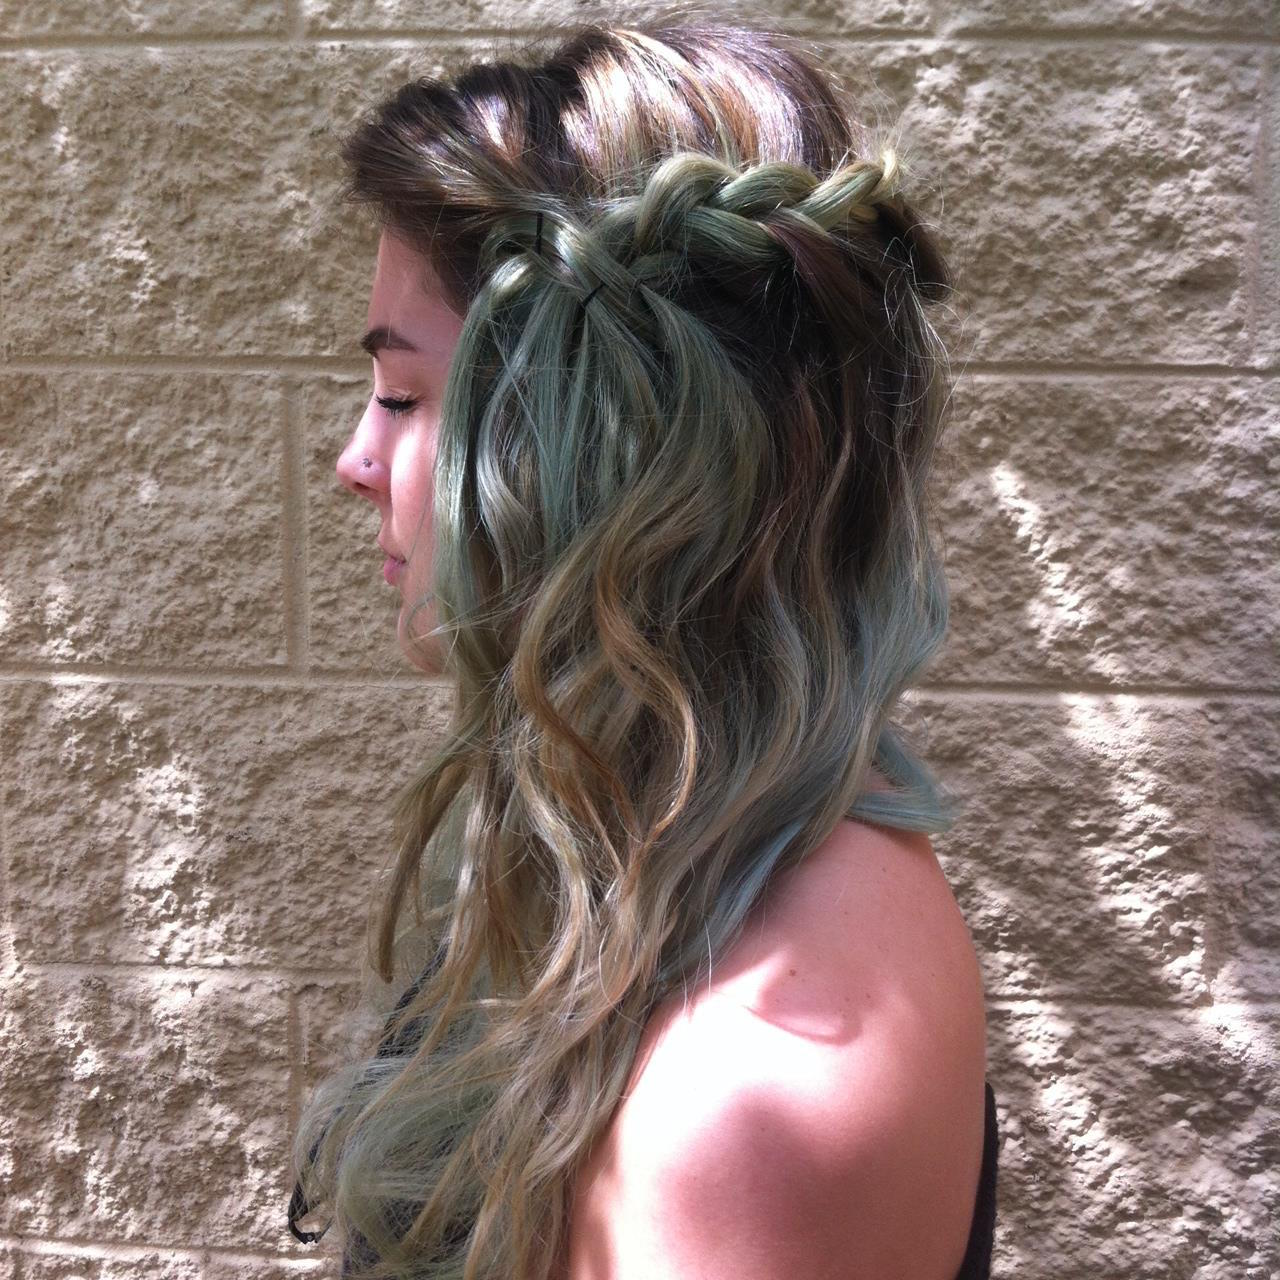 Game of thrones inspired hair